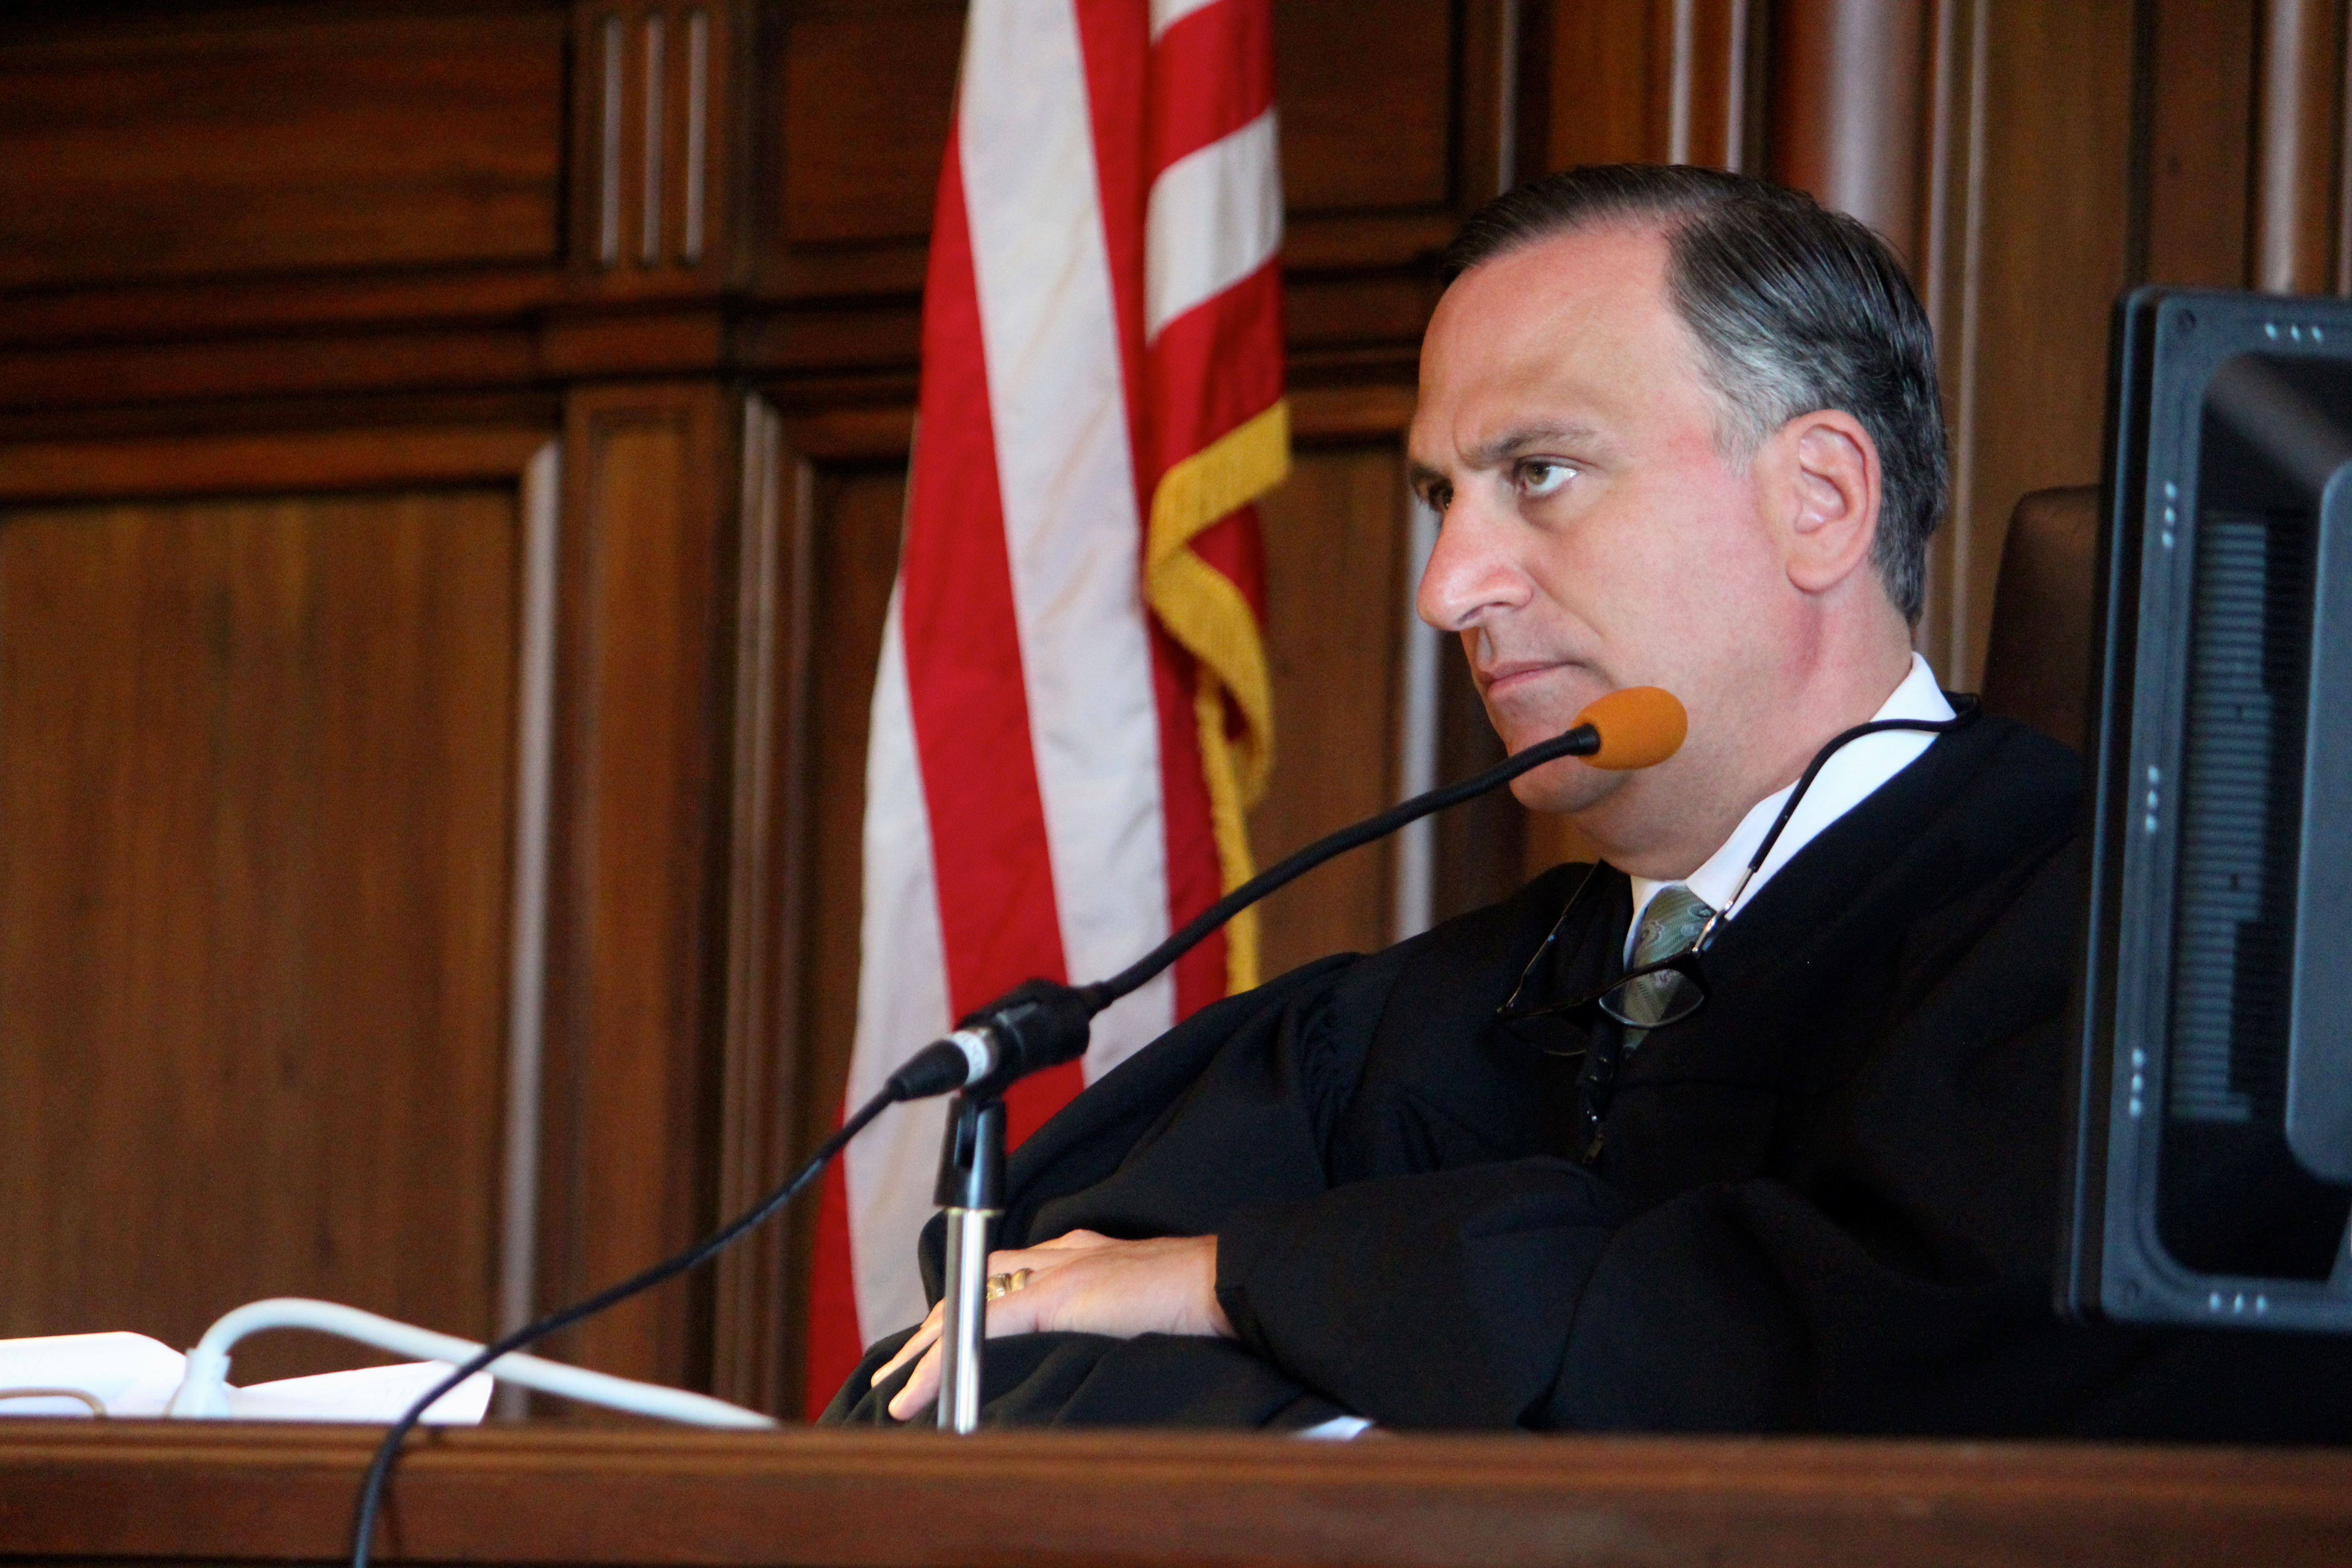 CT school funding on trial: 5 key questions facing the judge